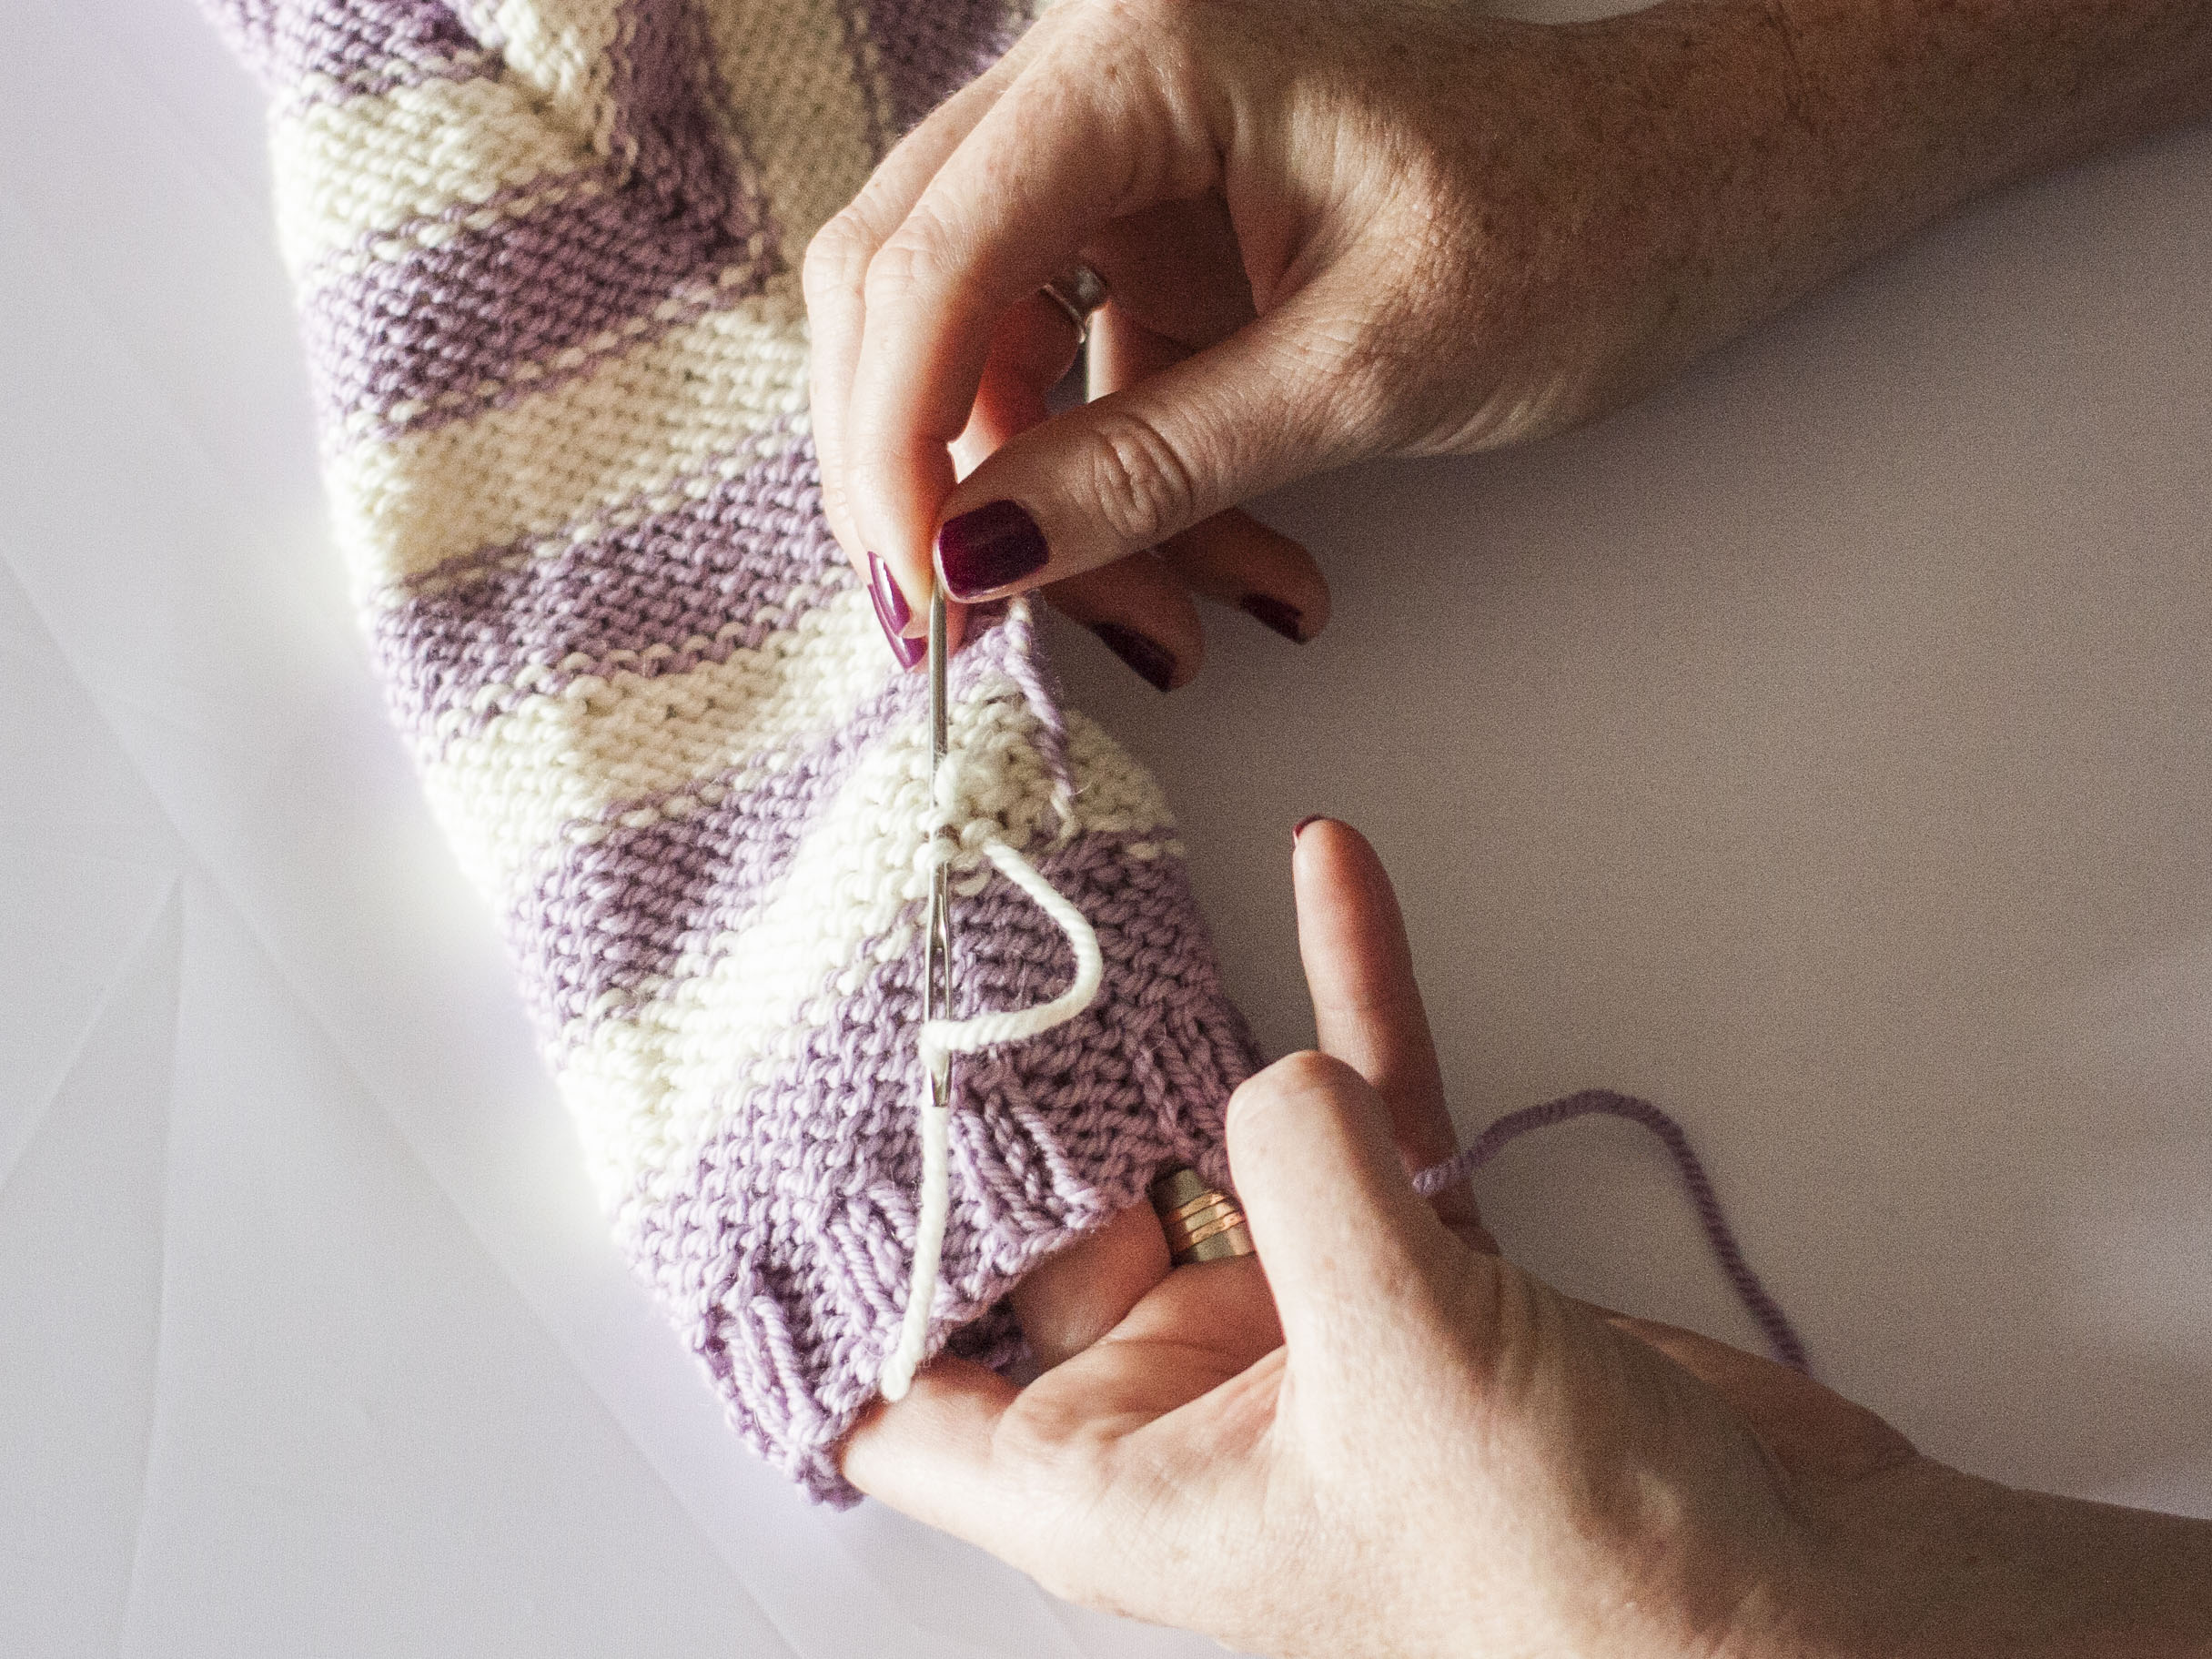 Weaving in ends in knitting